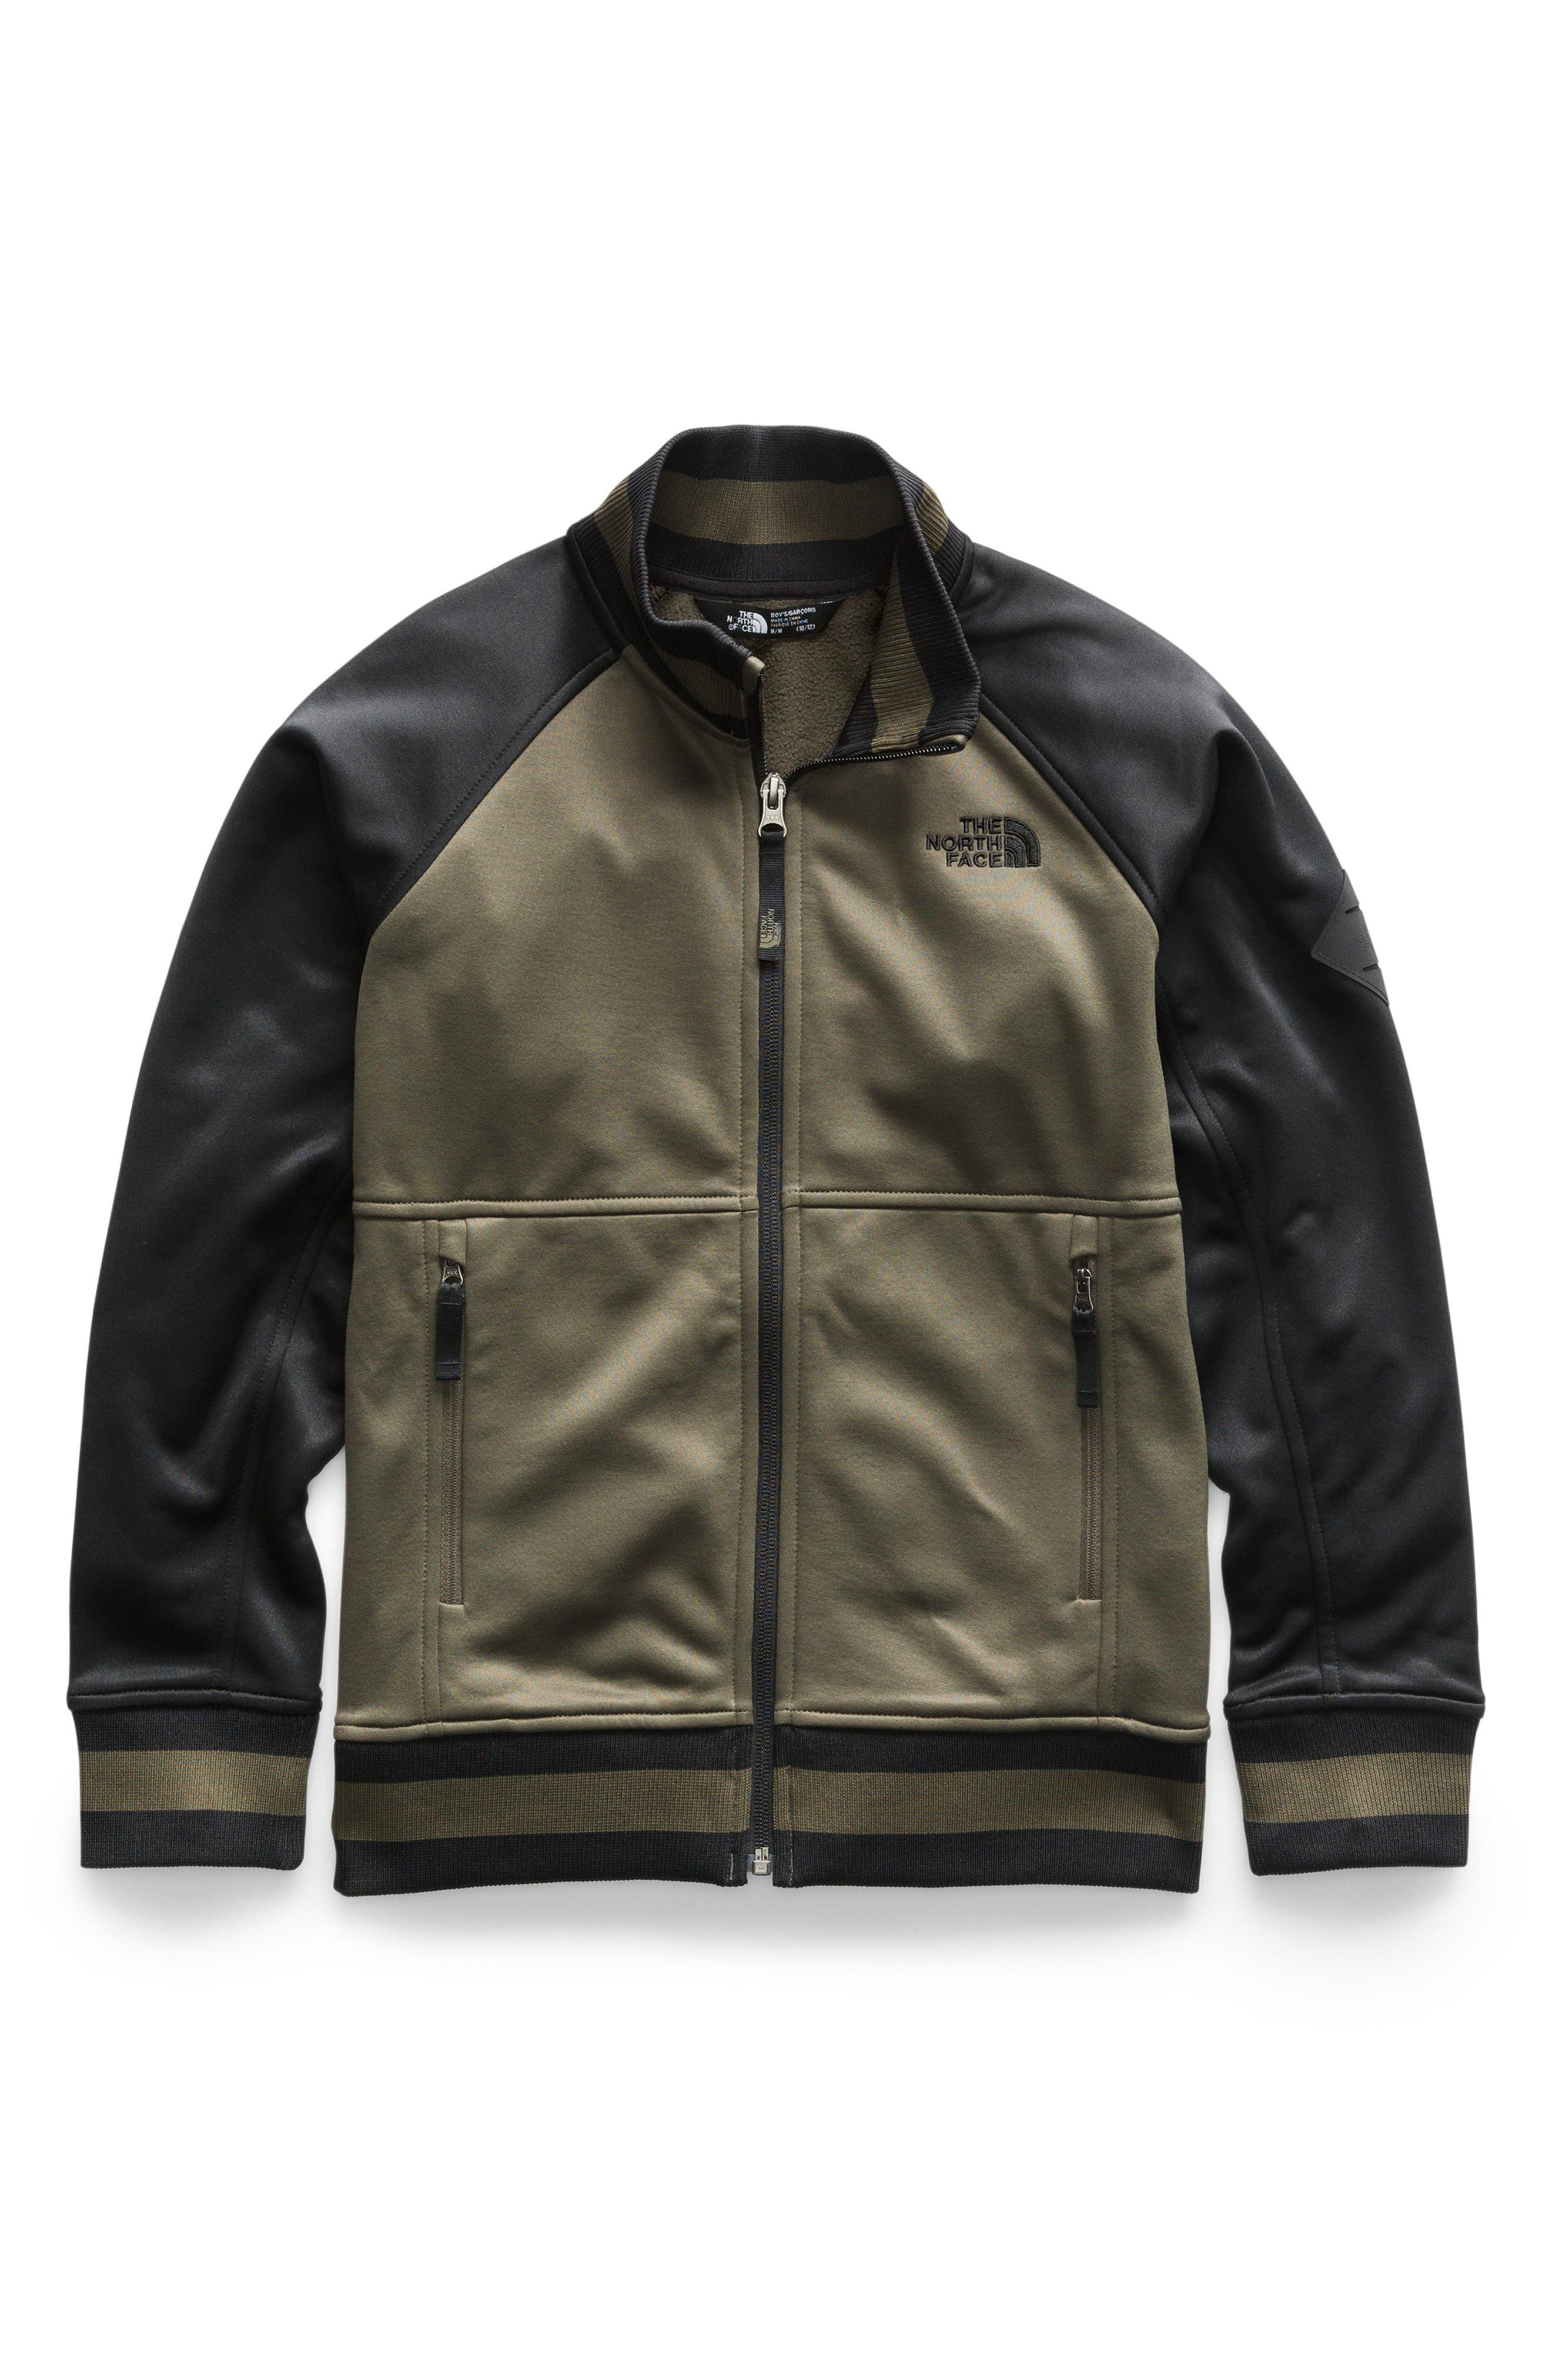 THE NORTH FACE Takeback Track Jacket, Main, color, NEW TAUPE GREEN